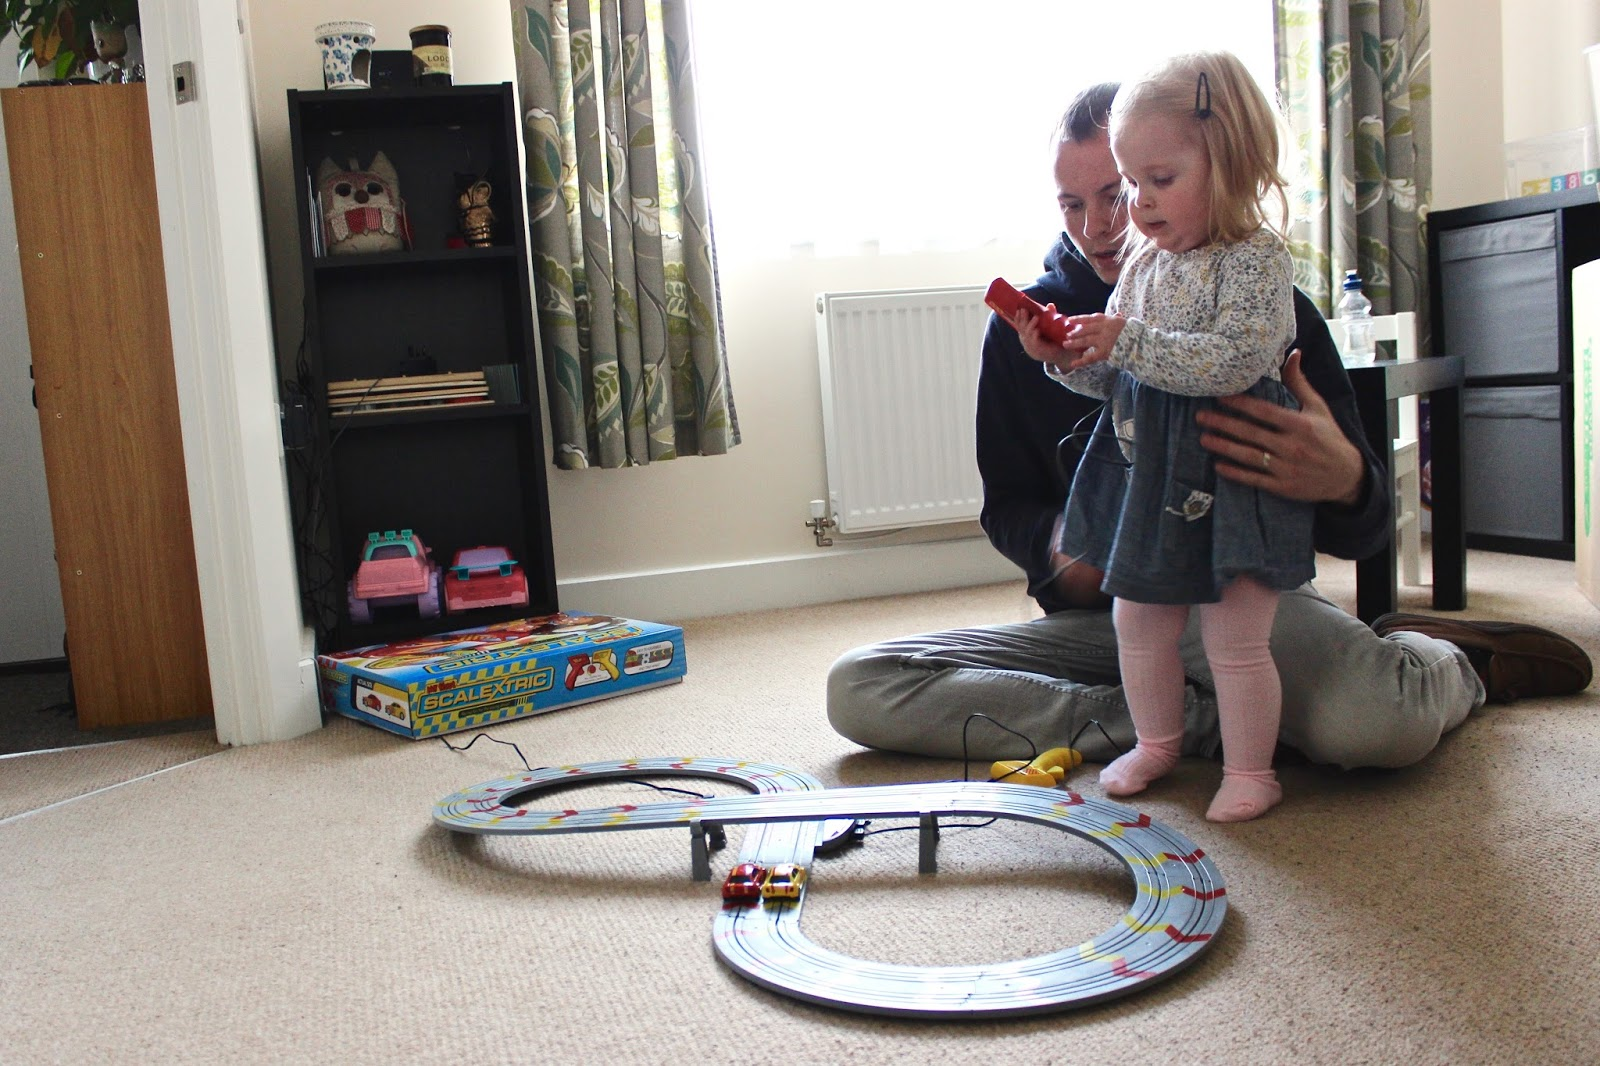 Elise is stood up next to the Scalextric track holding the red trigger. My husband is sat down behind her with his hands on her waist. The two cars are on the track in a stationary position.